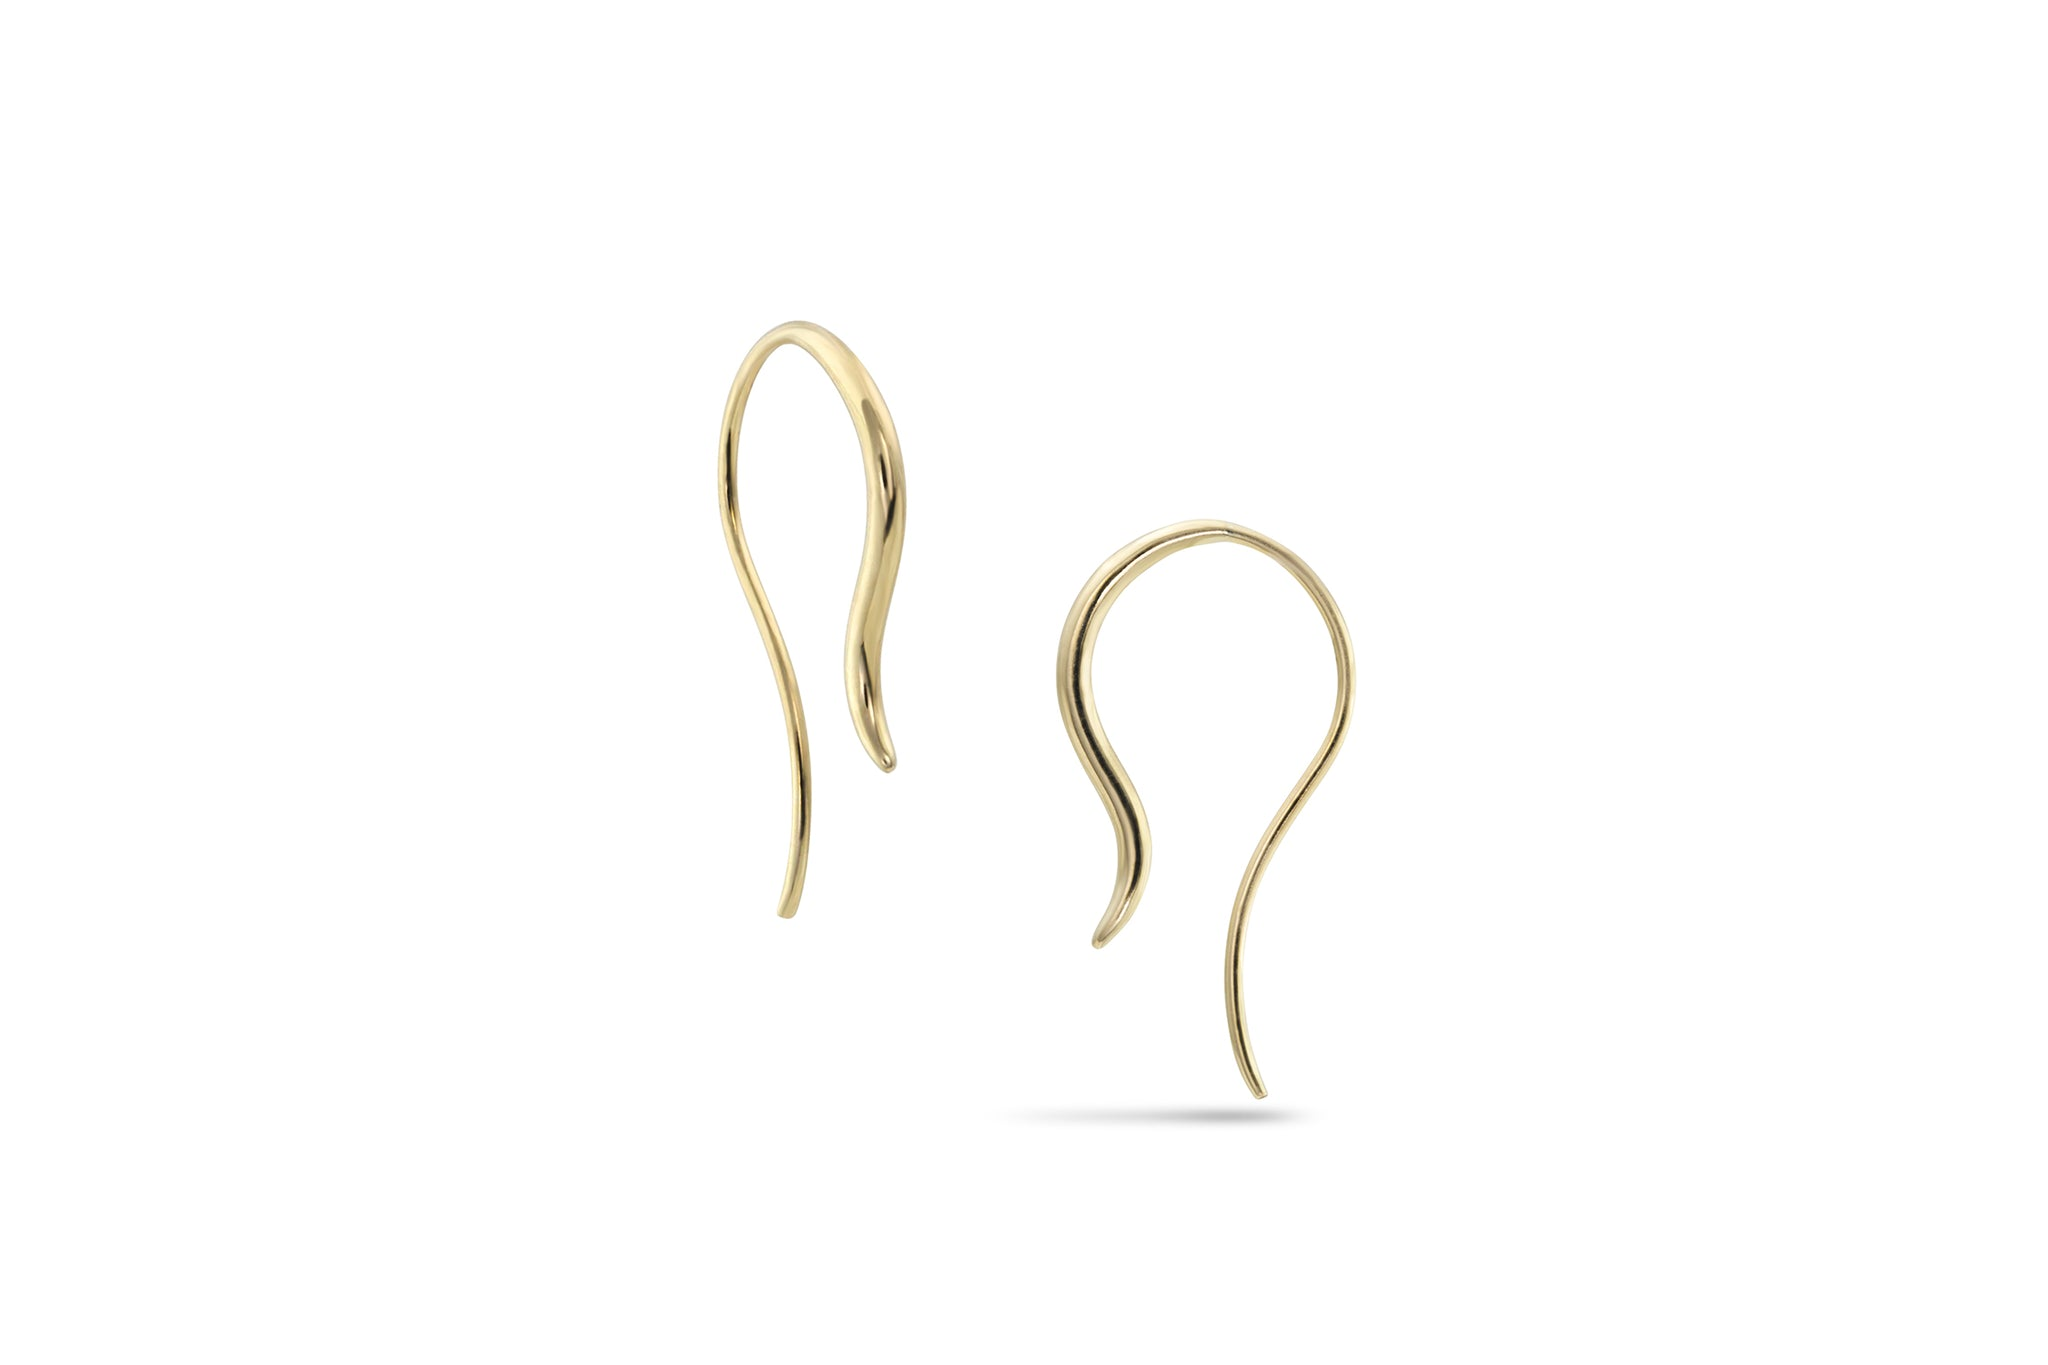 White Space 14k Pair of Oona Small Hook Earrings